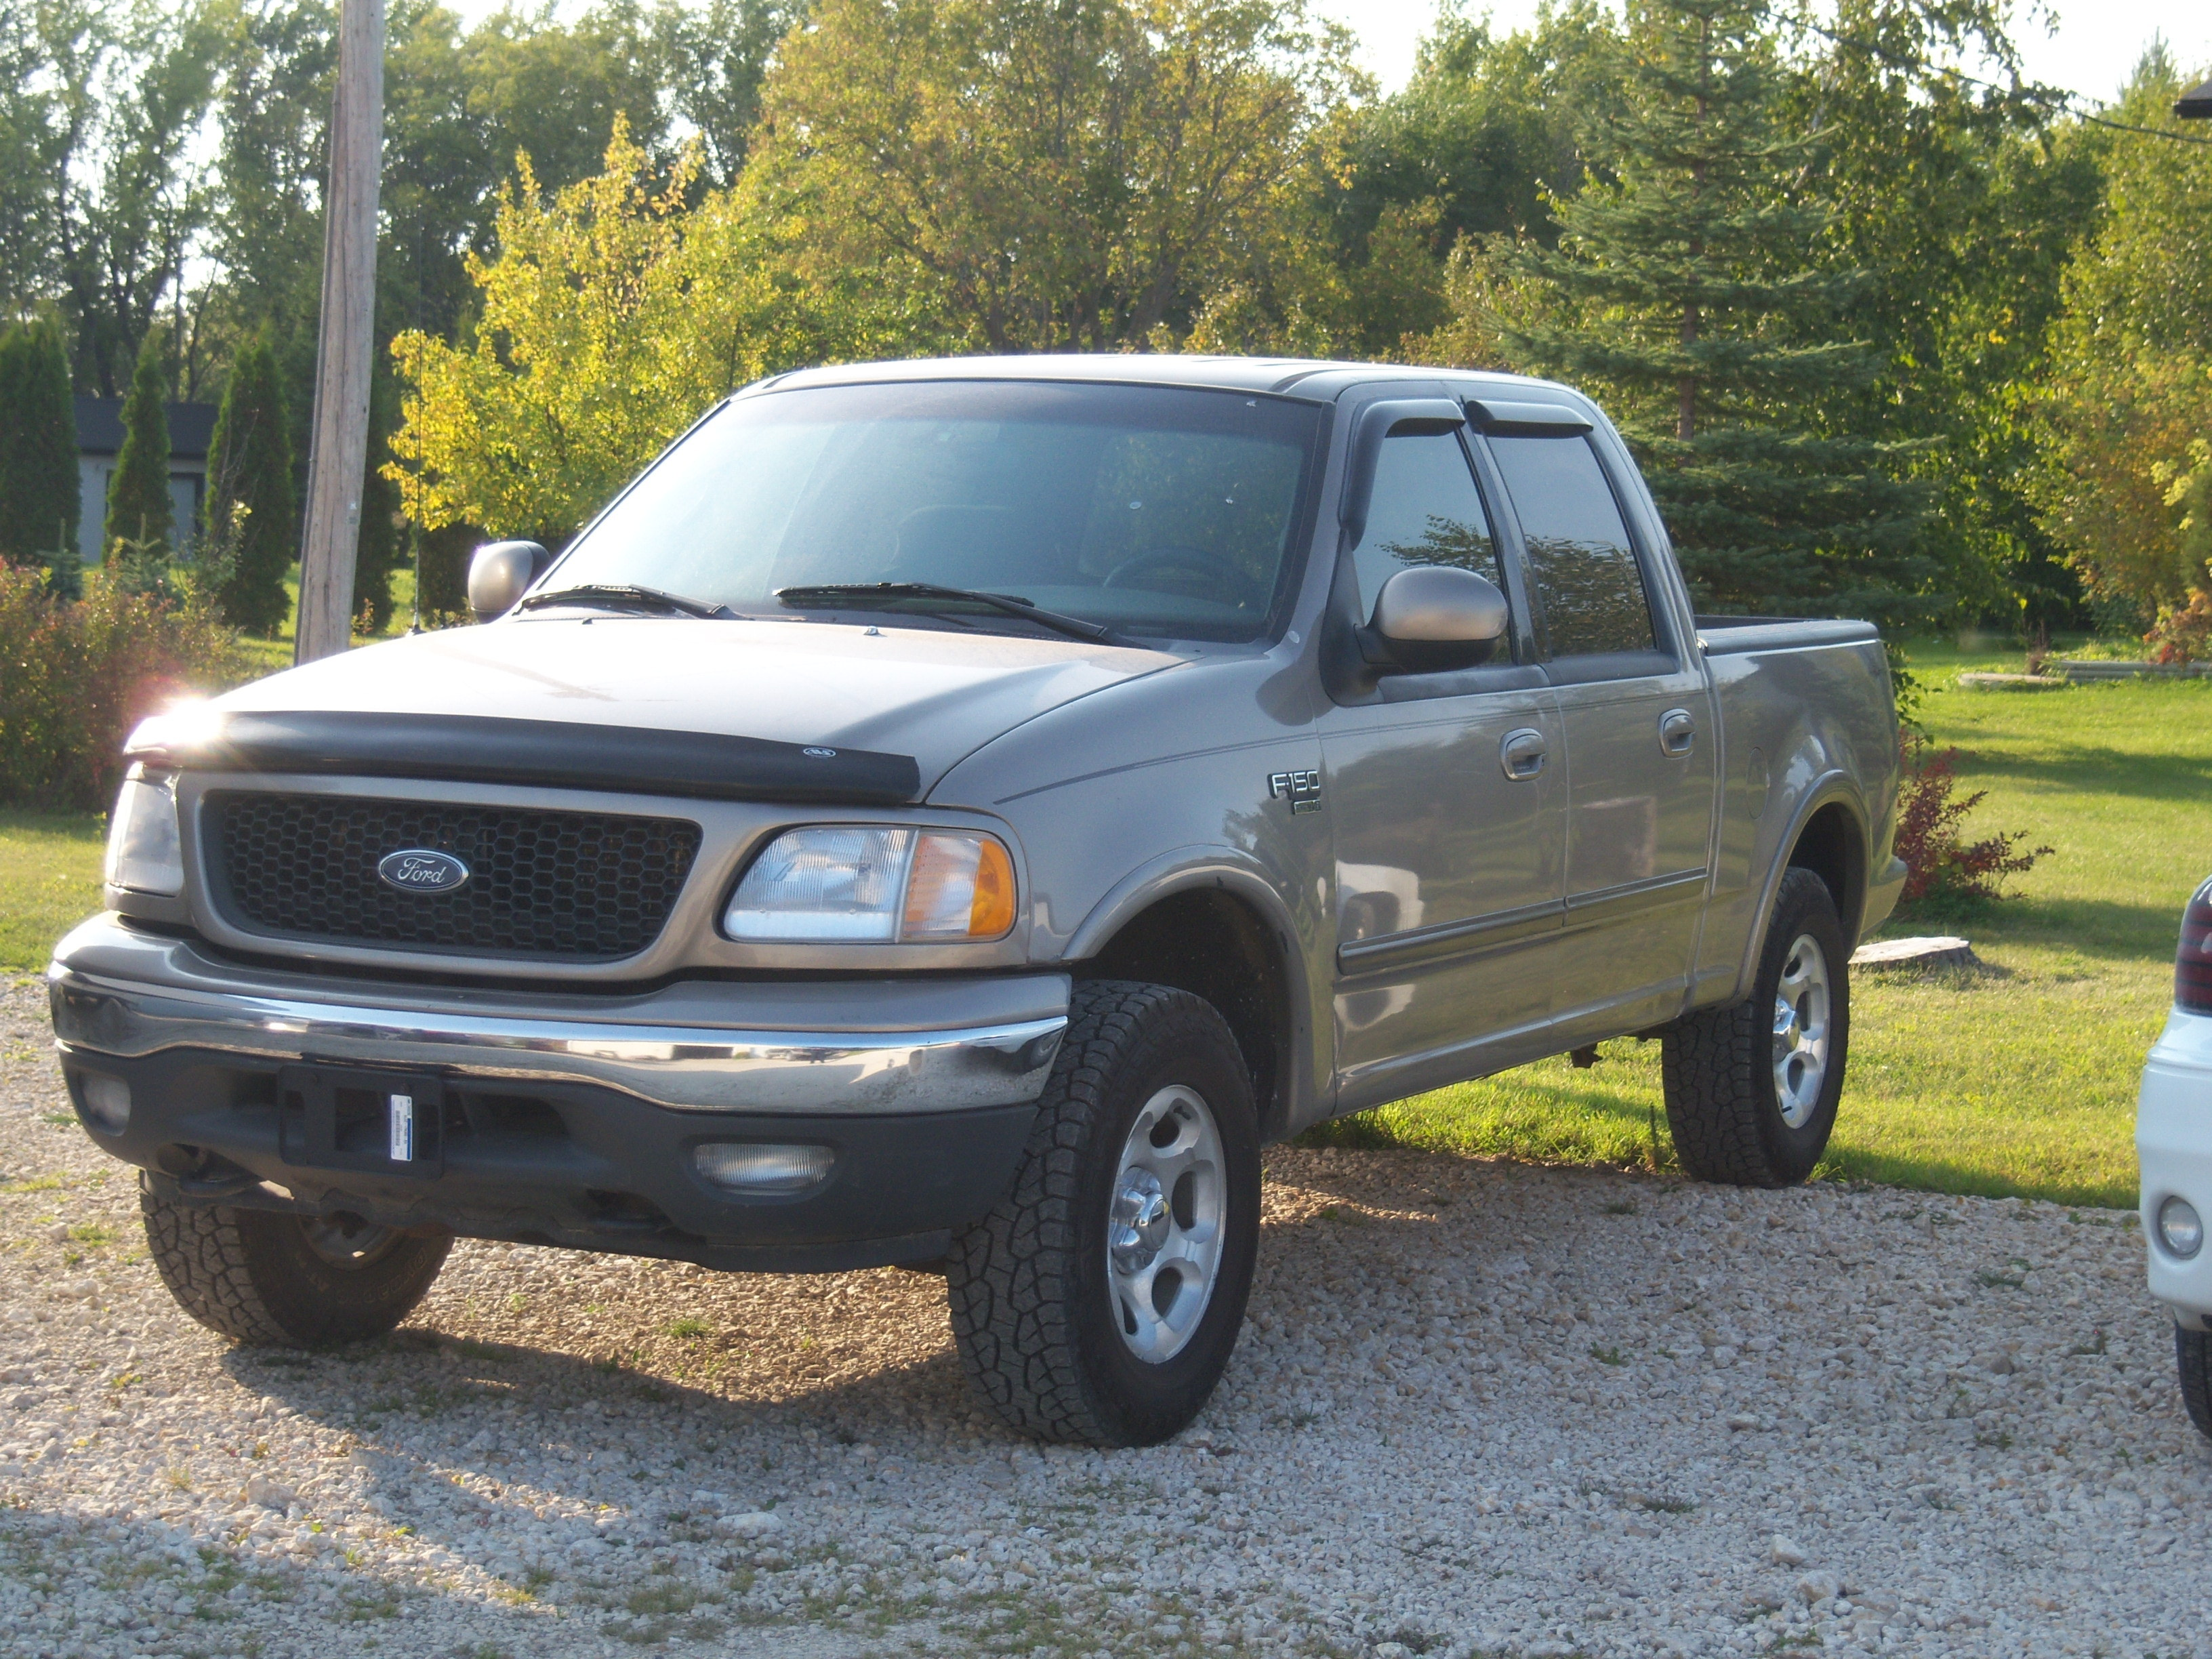 2001 F150 Supercrew >> bagedcav 2001 Ford F150 SuperCrew Cab Specs, Photos